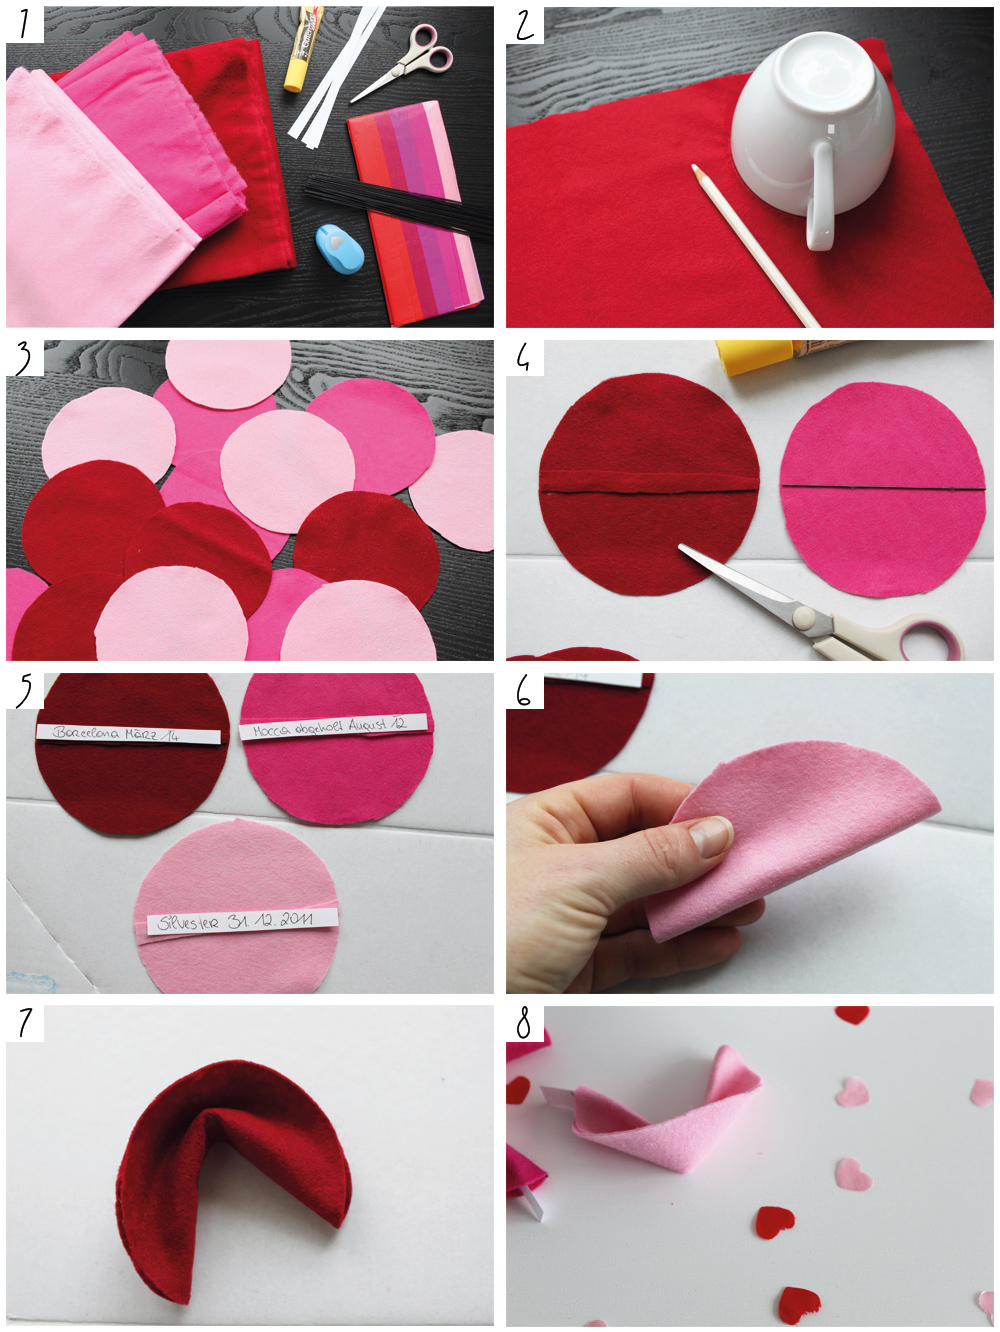 who is mocca, fashionblog, beautyblog, blogger tirol, austria, oesterreich, valentinstag, valentines day, dos and donts, valentinstag diy, glueckskekse, fortune cookies